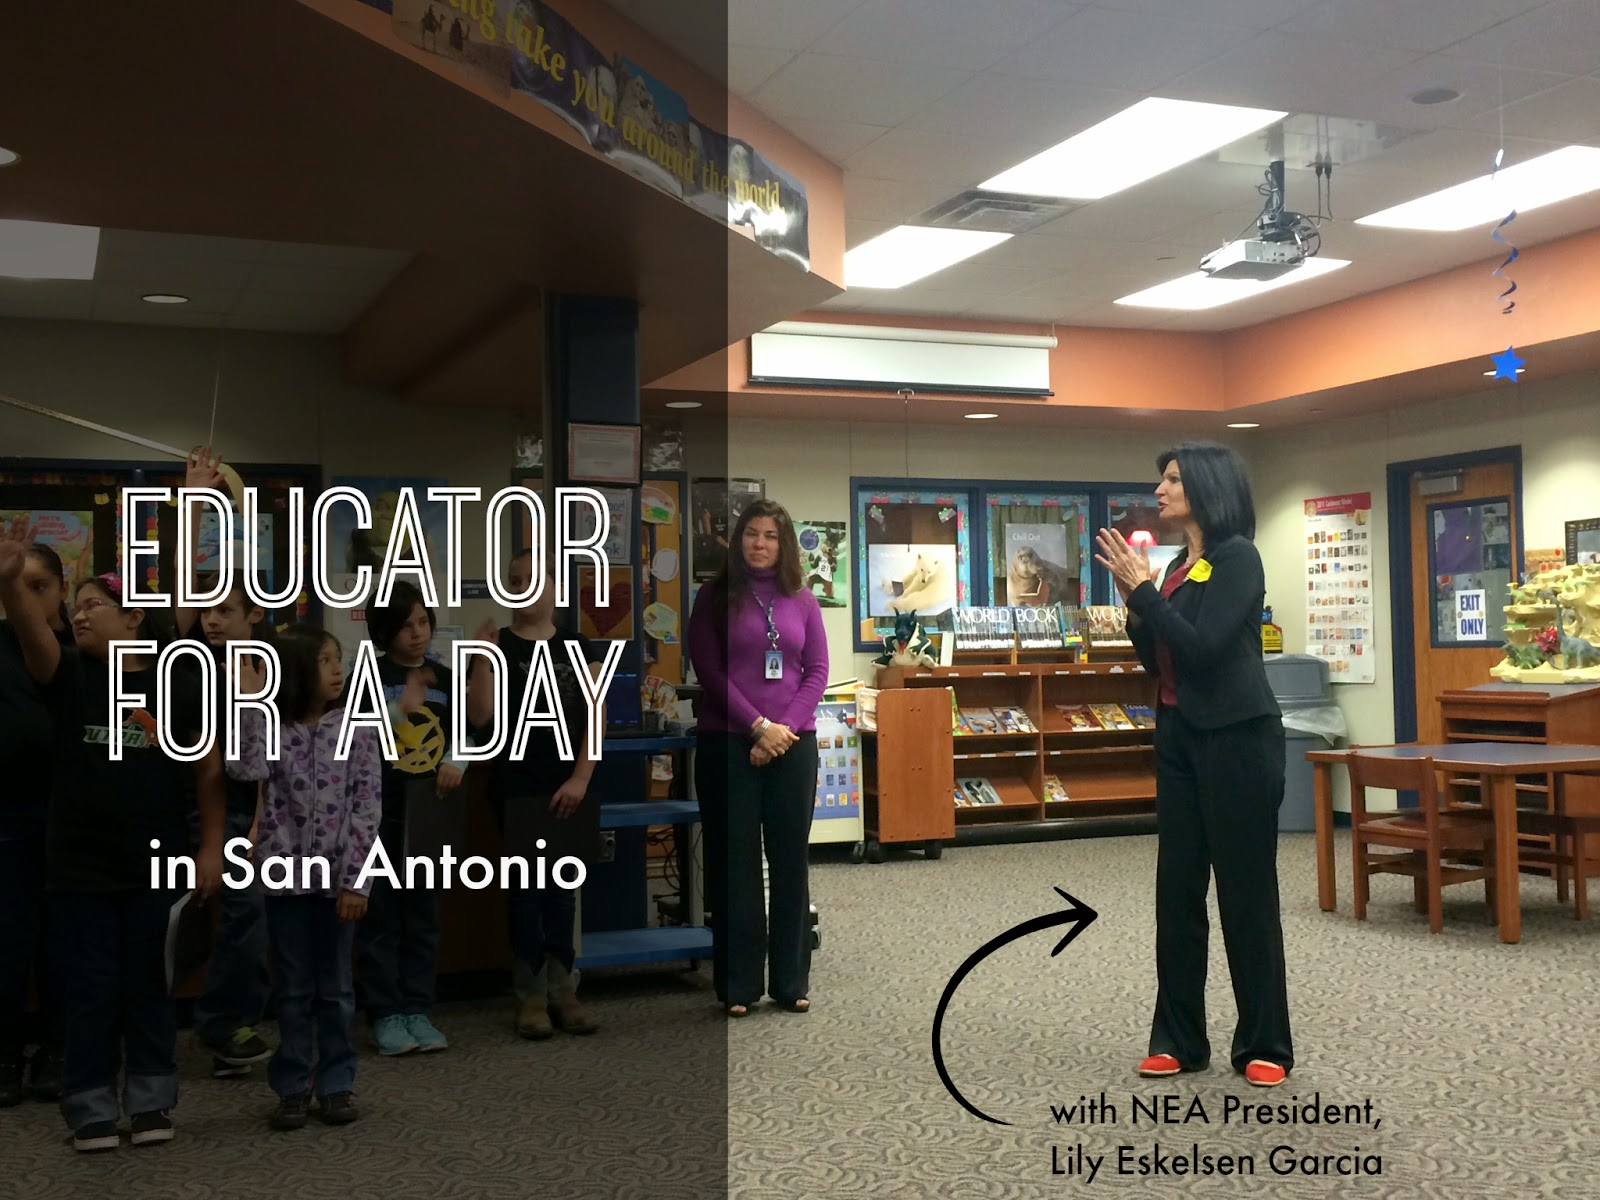 How Parents Can Support Teachers - My Educator For A Day Experience in San Antonio